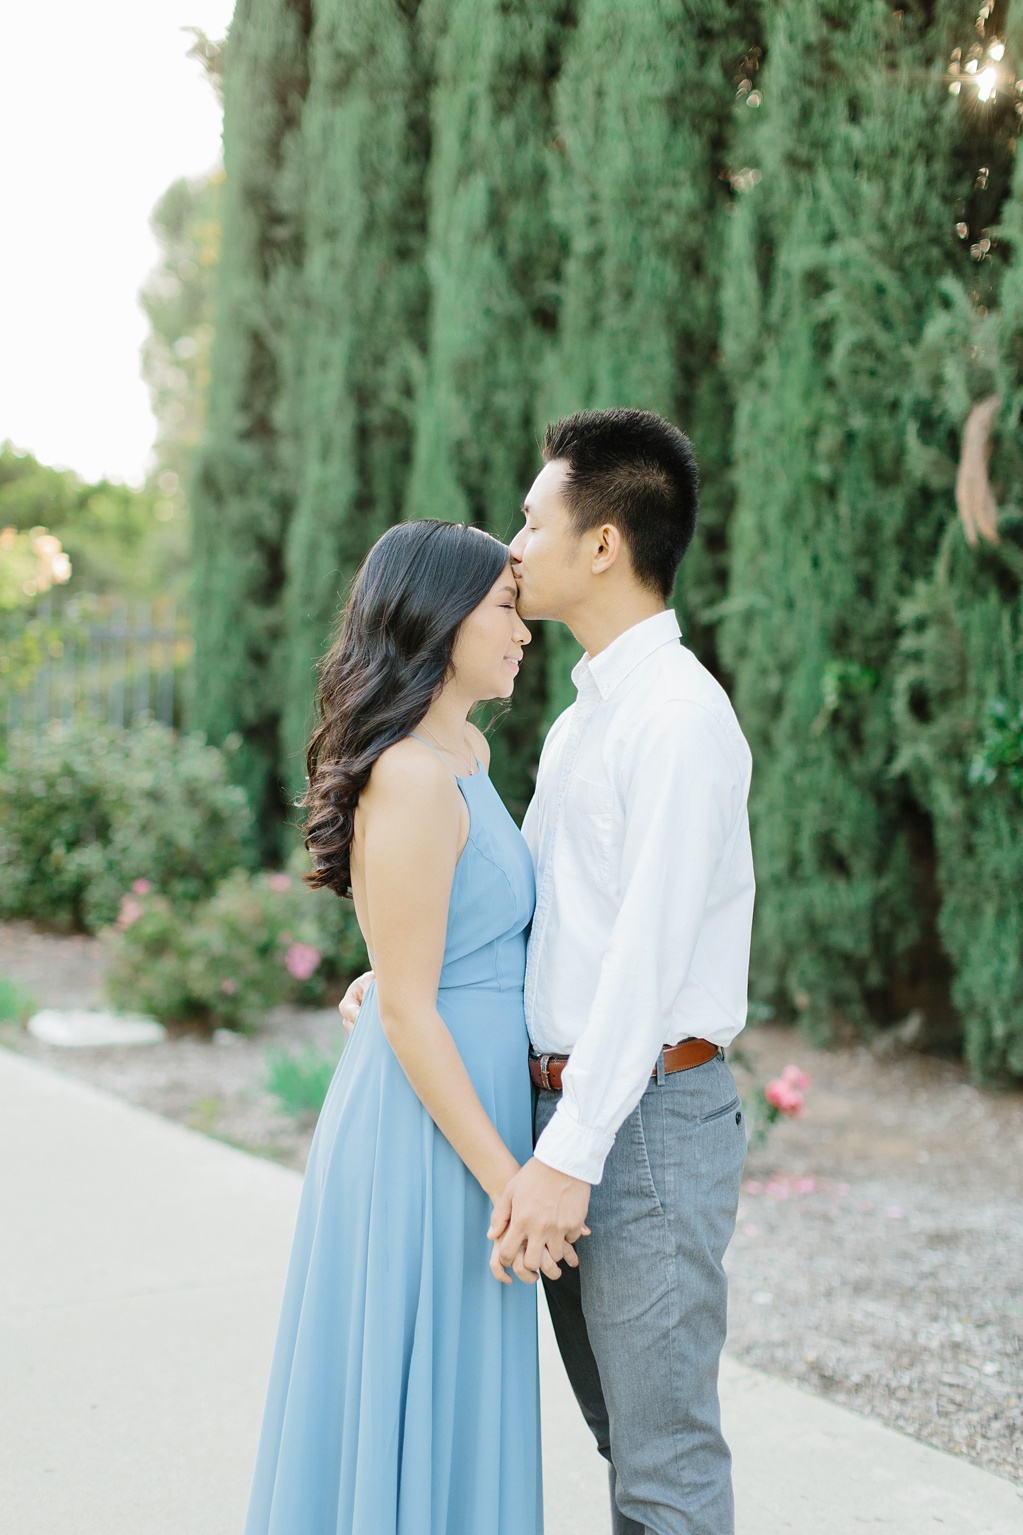 Elegant rose garden engagement shoot at Lacy Park in Pasadena by LA wedding photographer-Madison Ellis Photography (58)